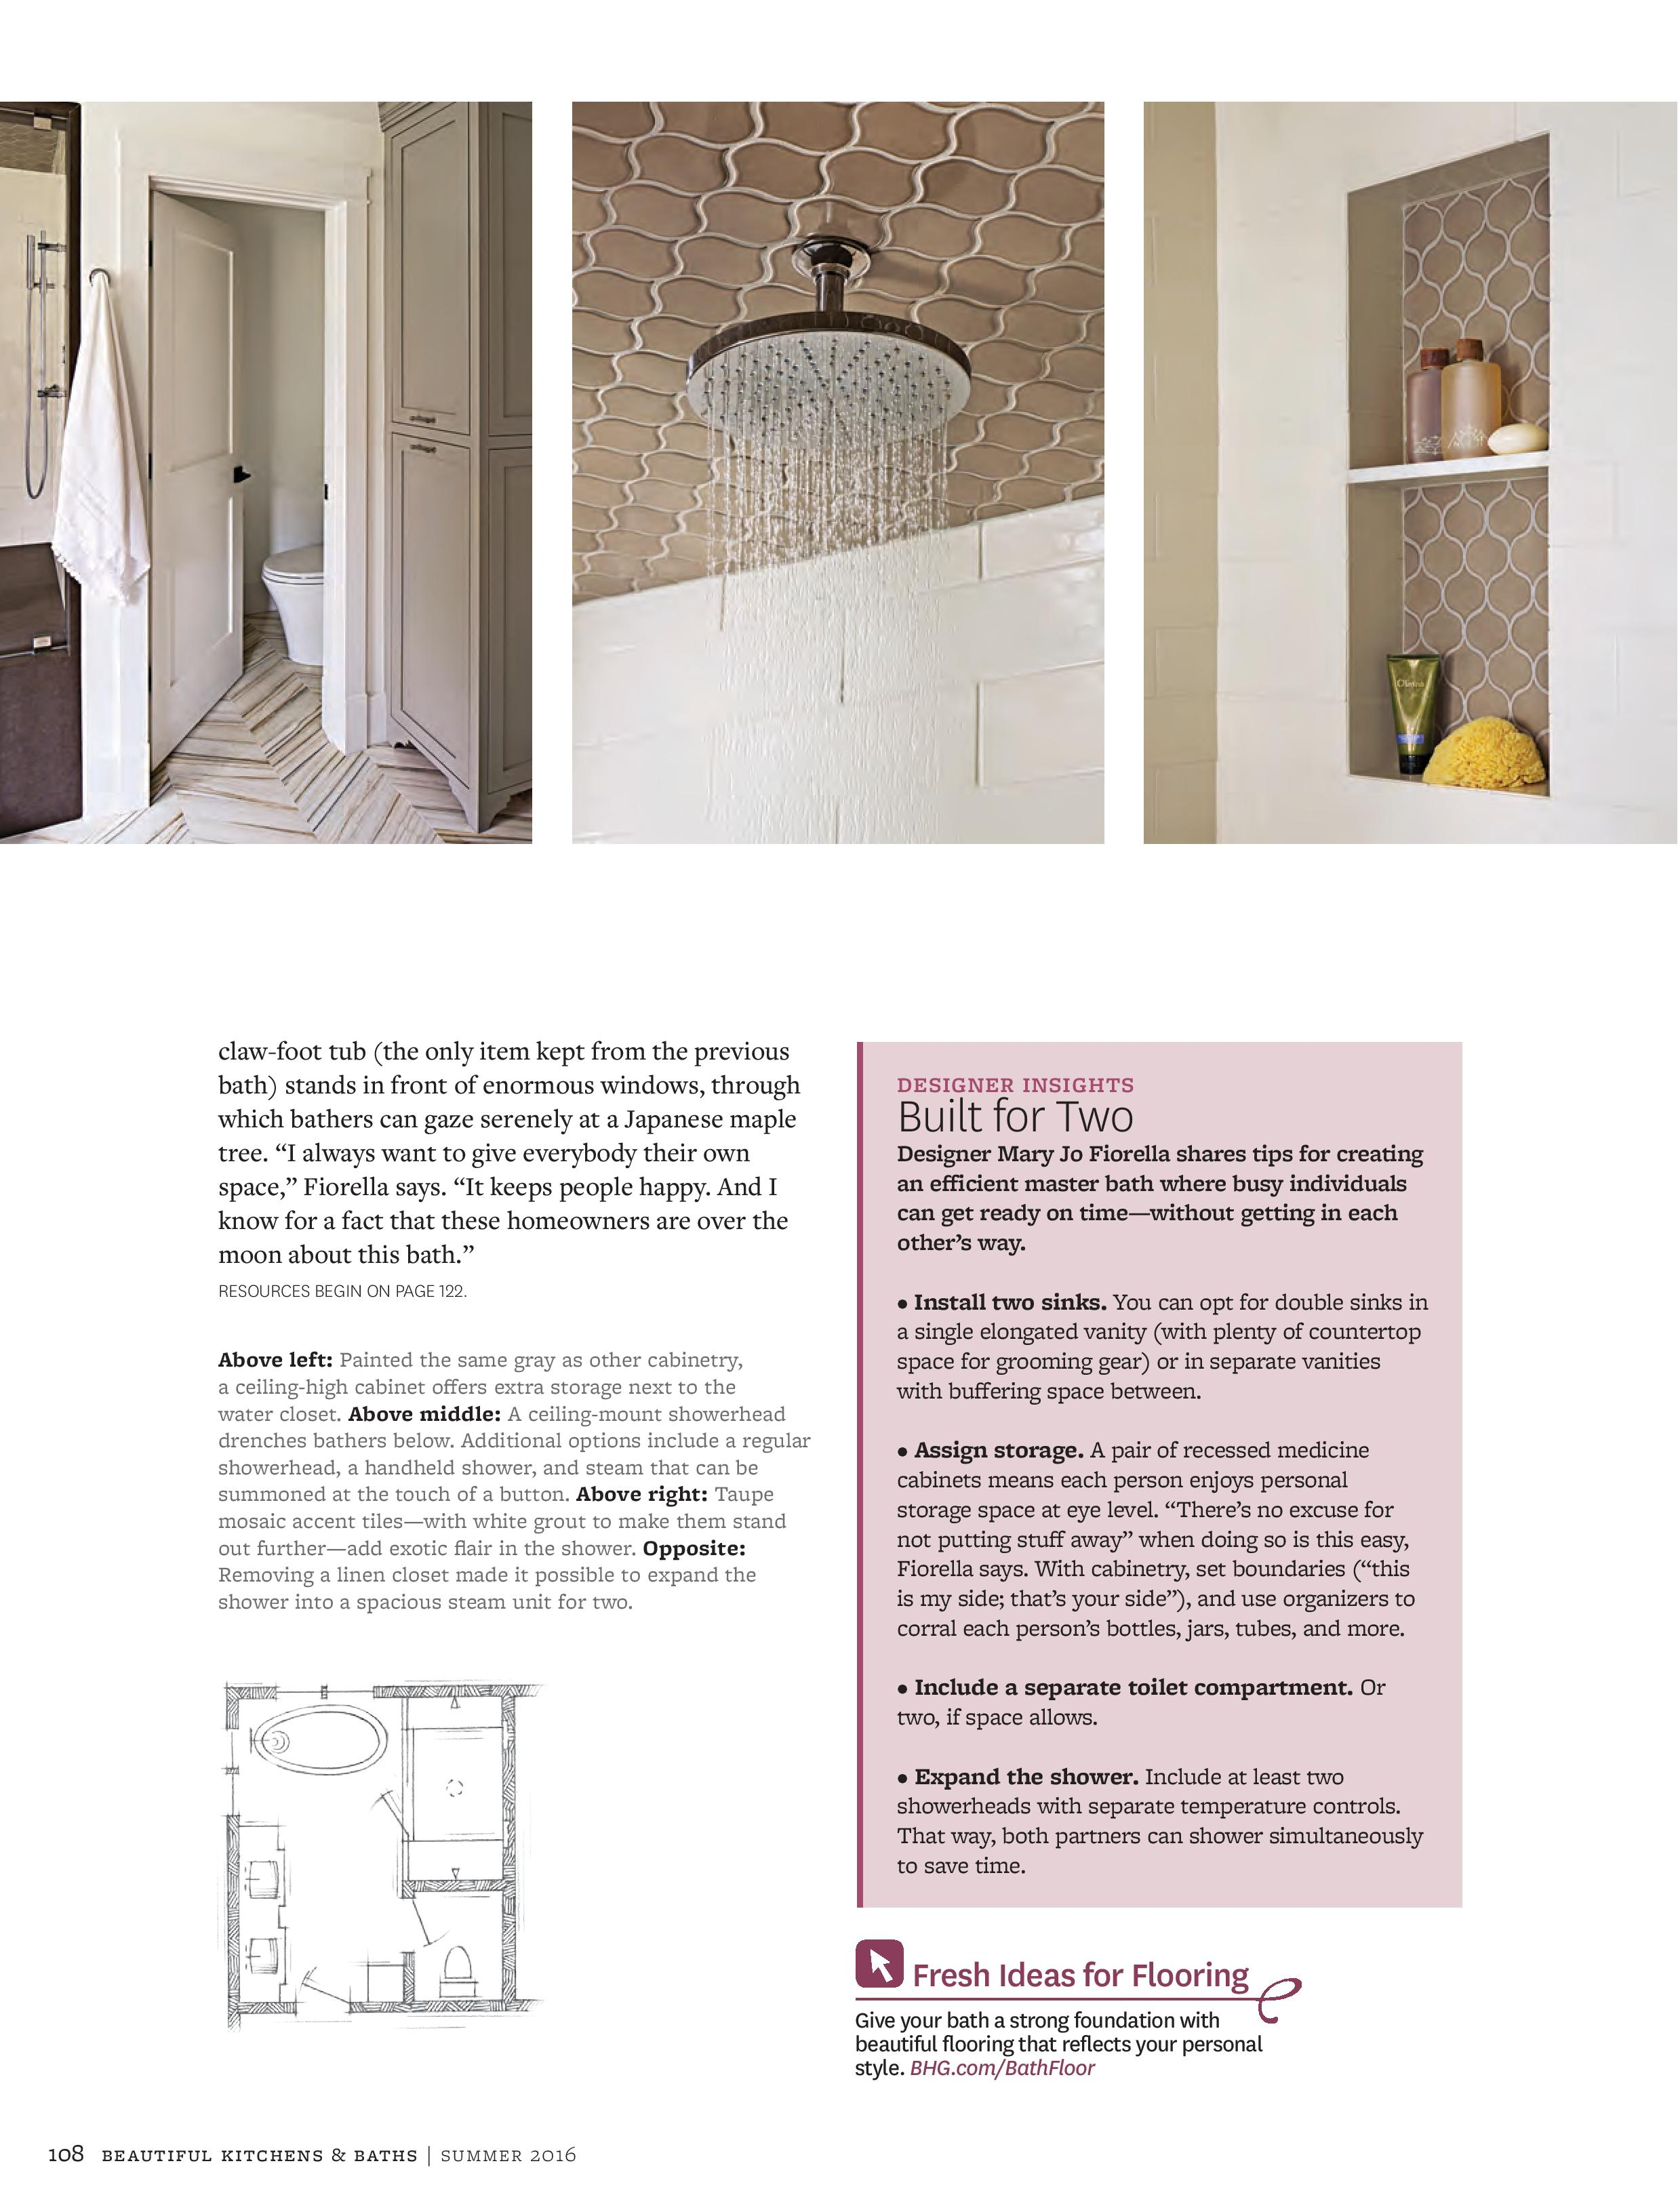 1-press_Beautiful_Kitchens_and_Baths_-_Summer_2016-page-006